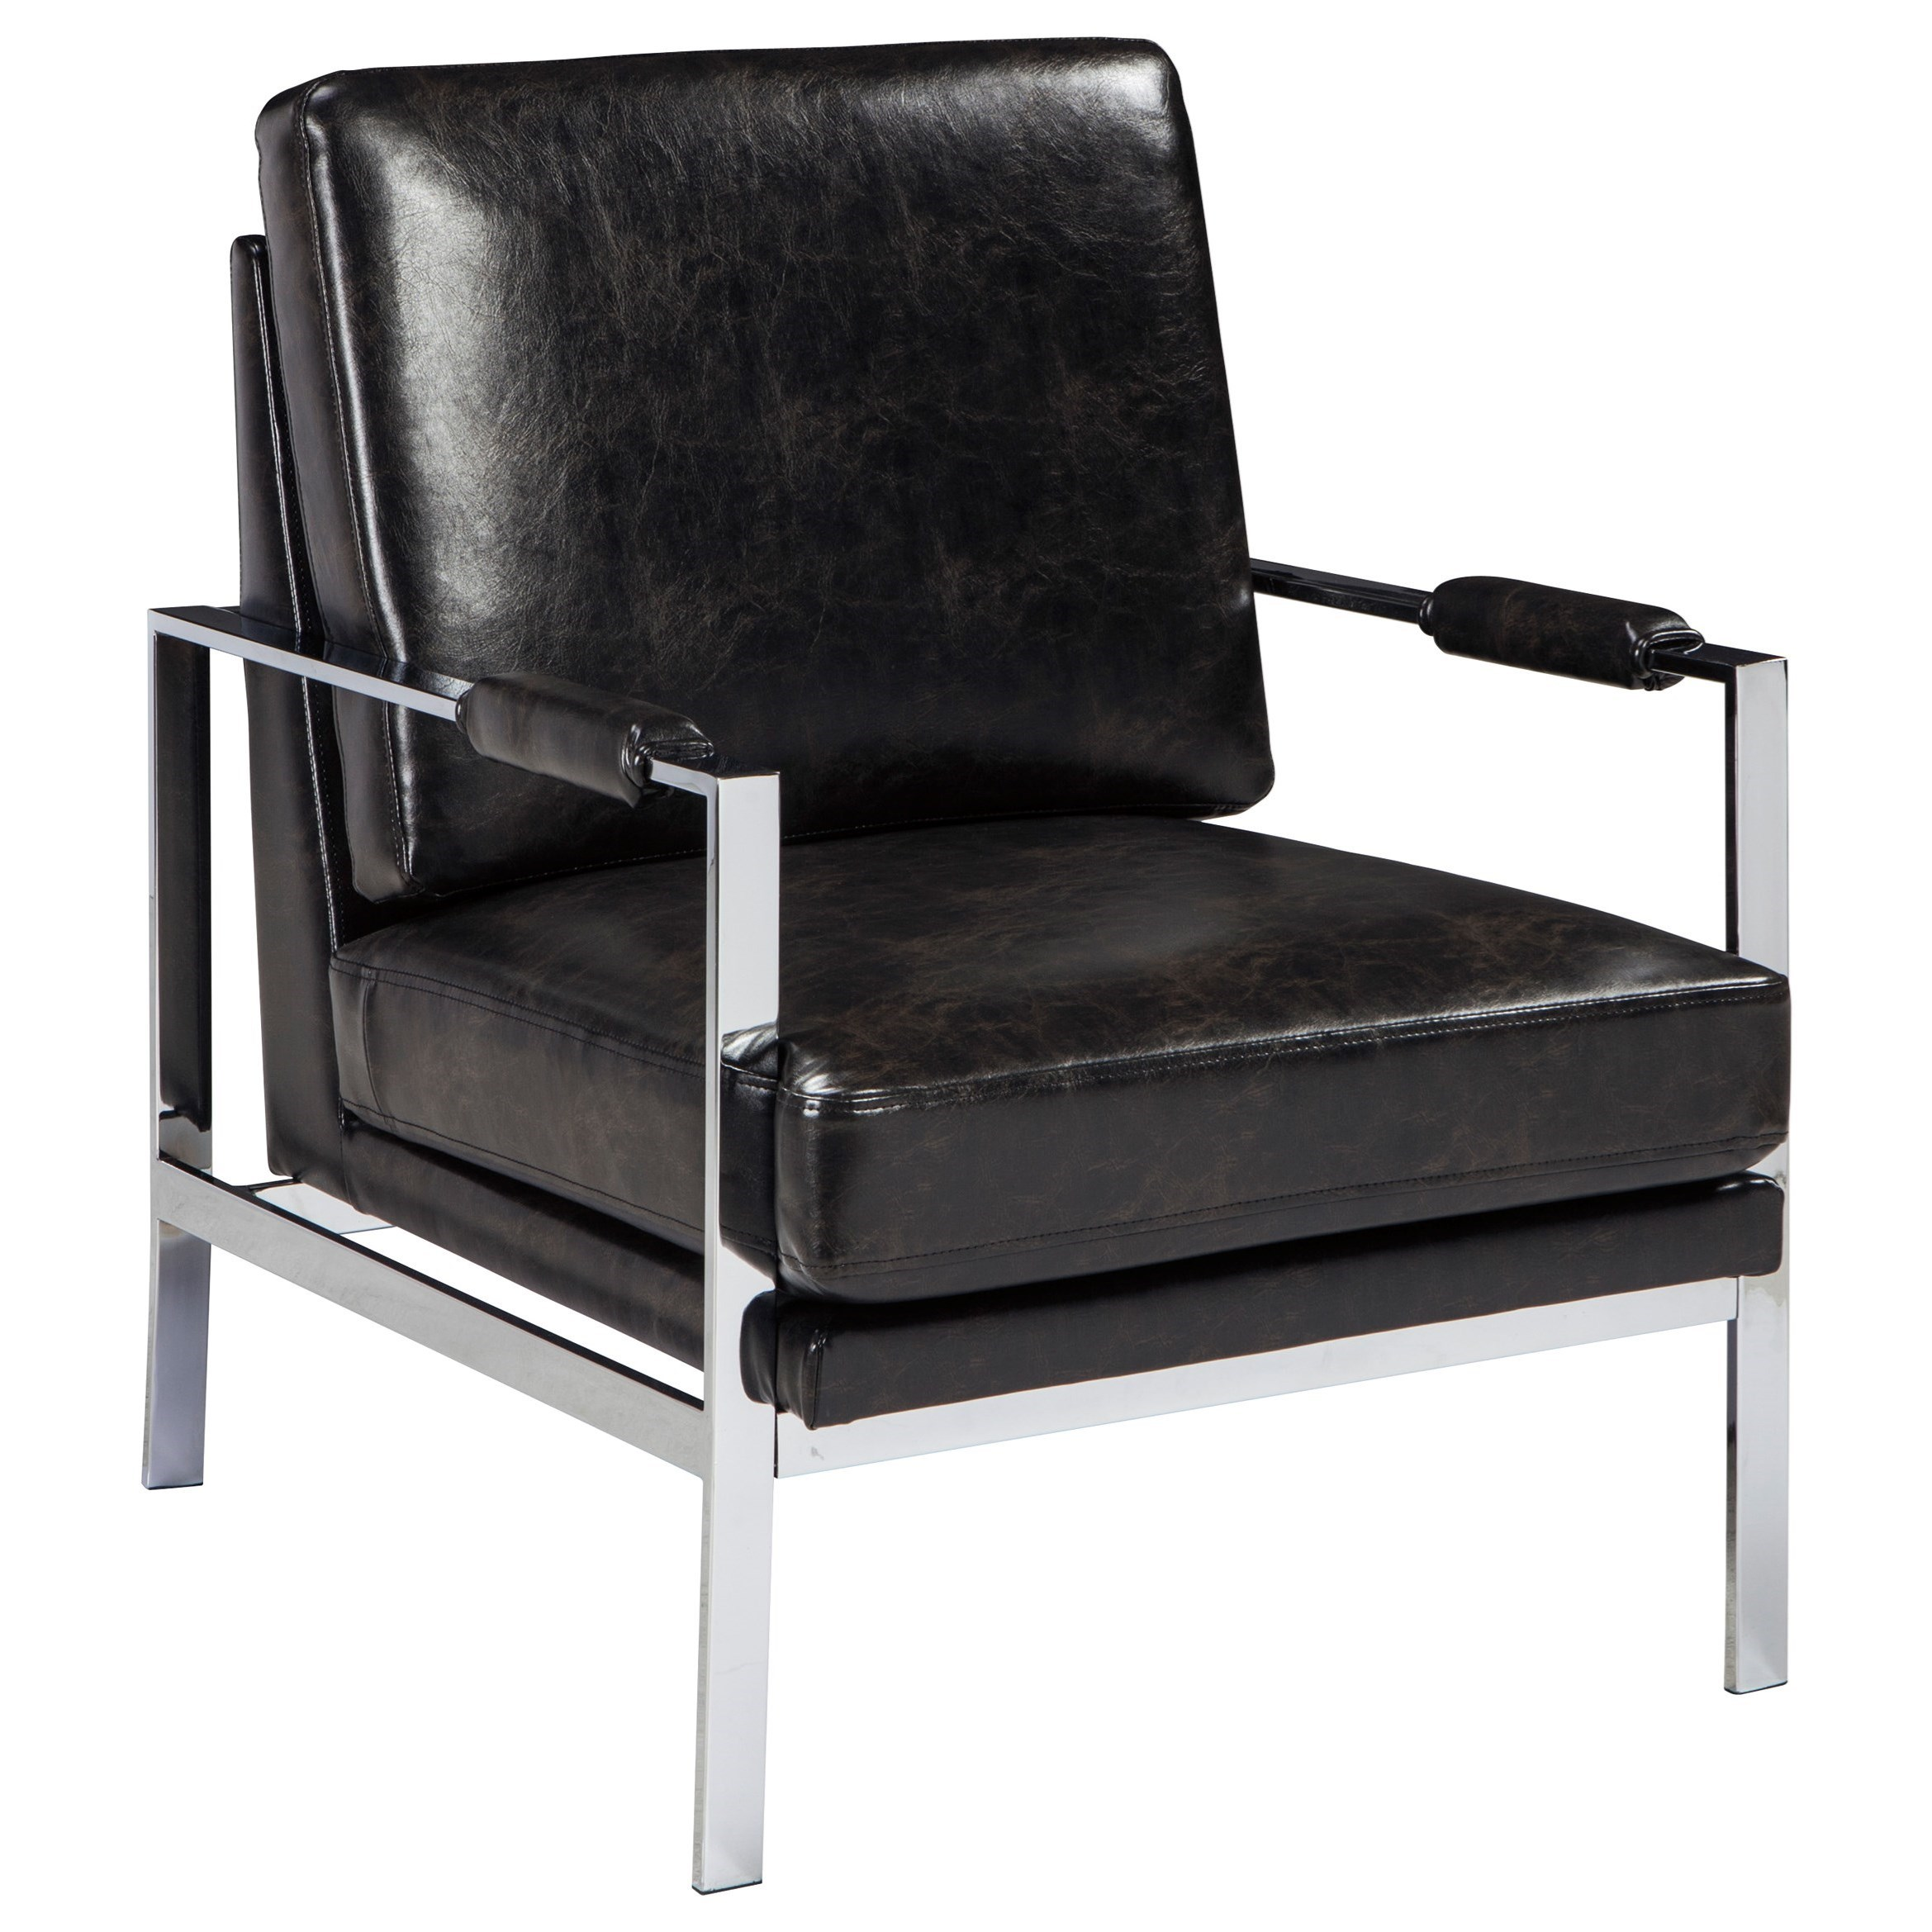 chrome finish metal arm accent chair with black faux leather by signature design by ashley. Black Bedroom Furniture Sets. Home Design Ideas